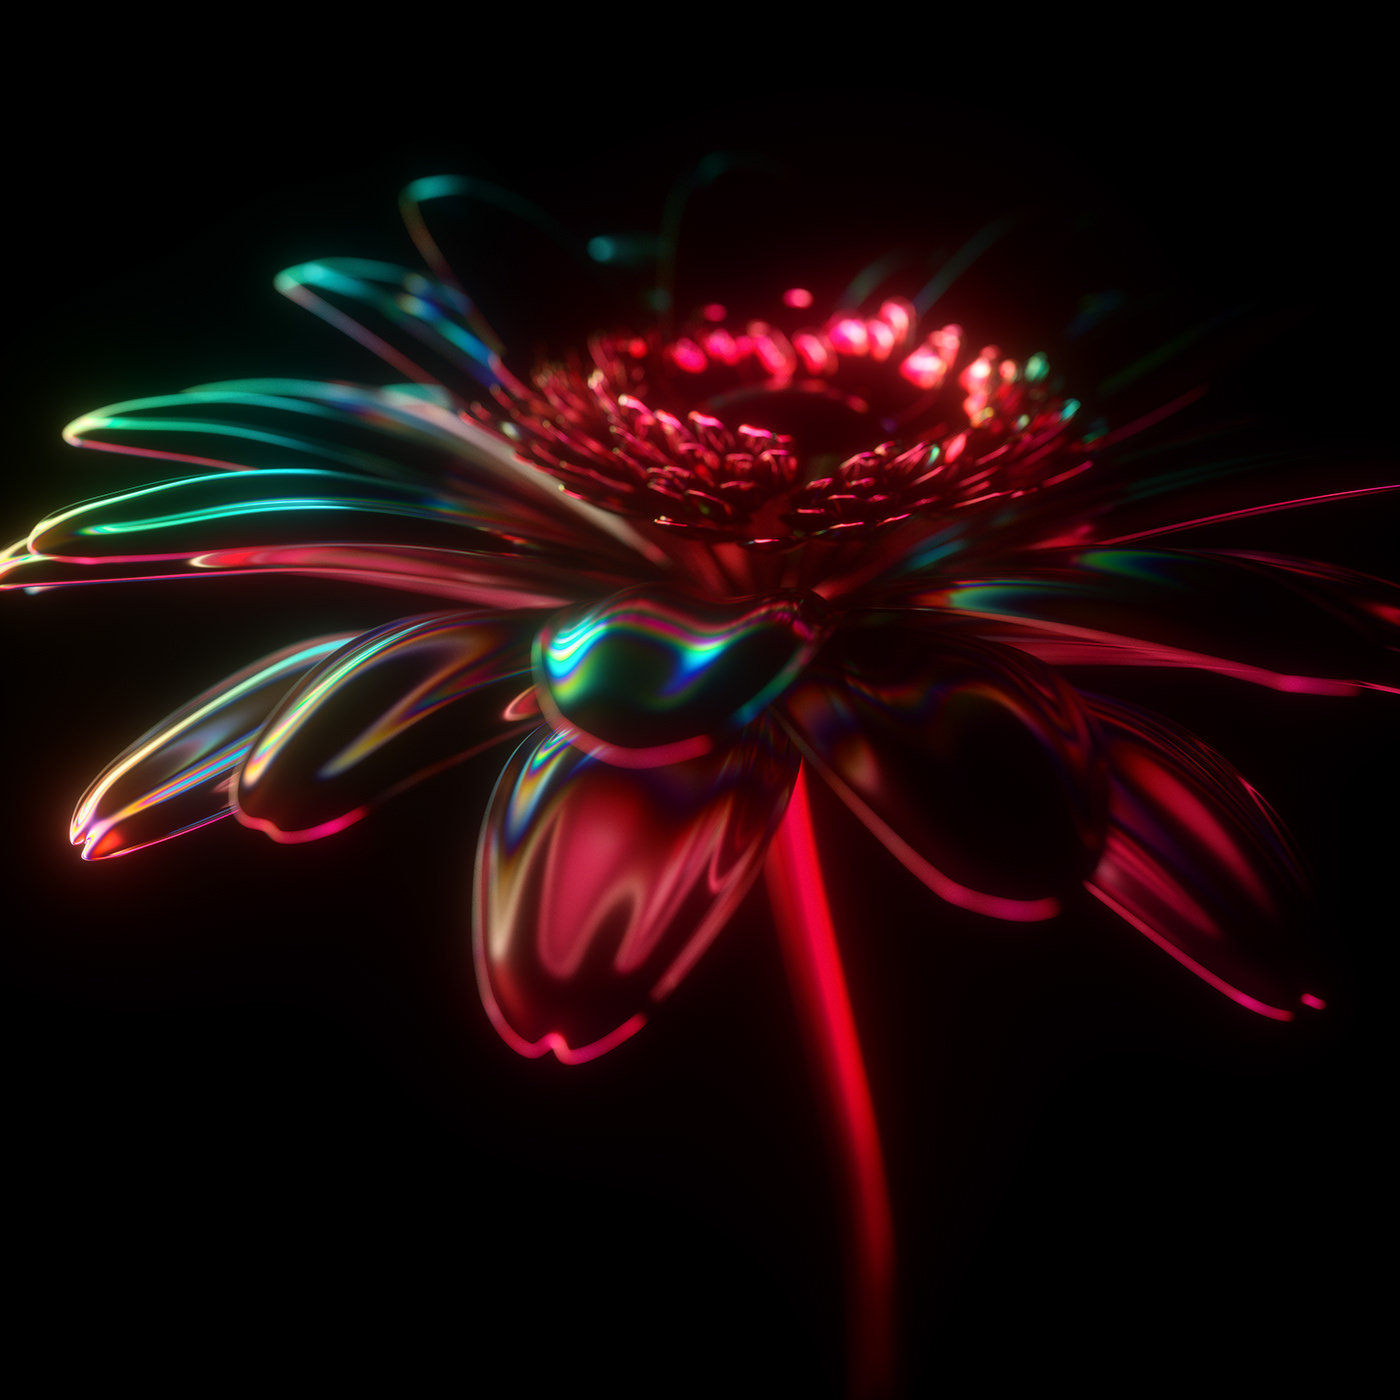 Image may contain: fireworks, light and flower